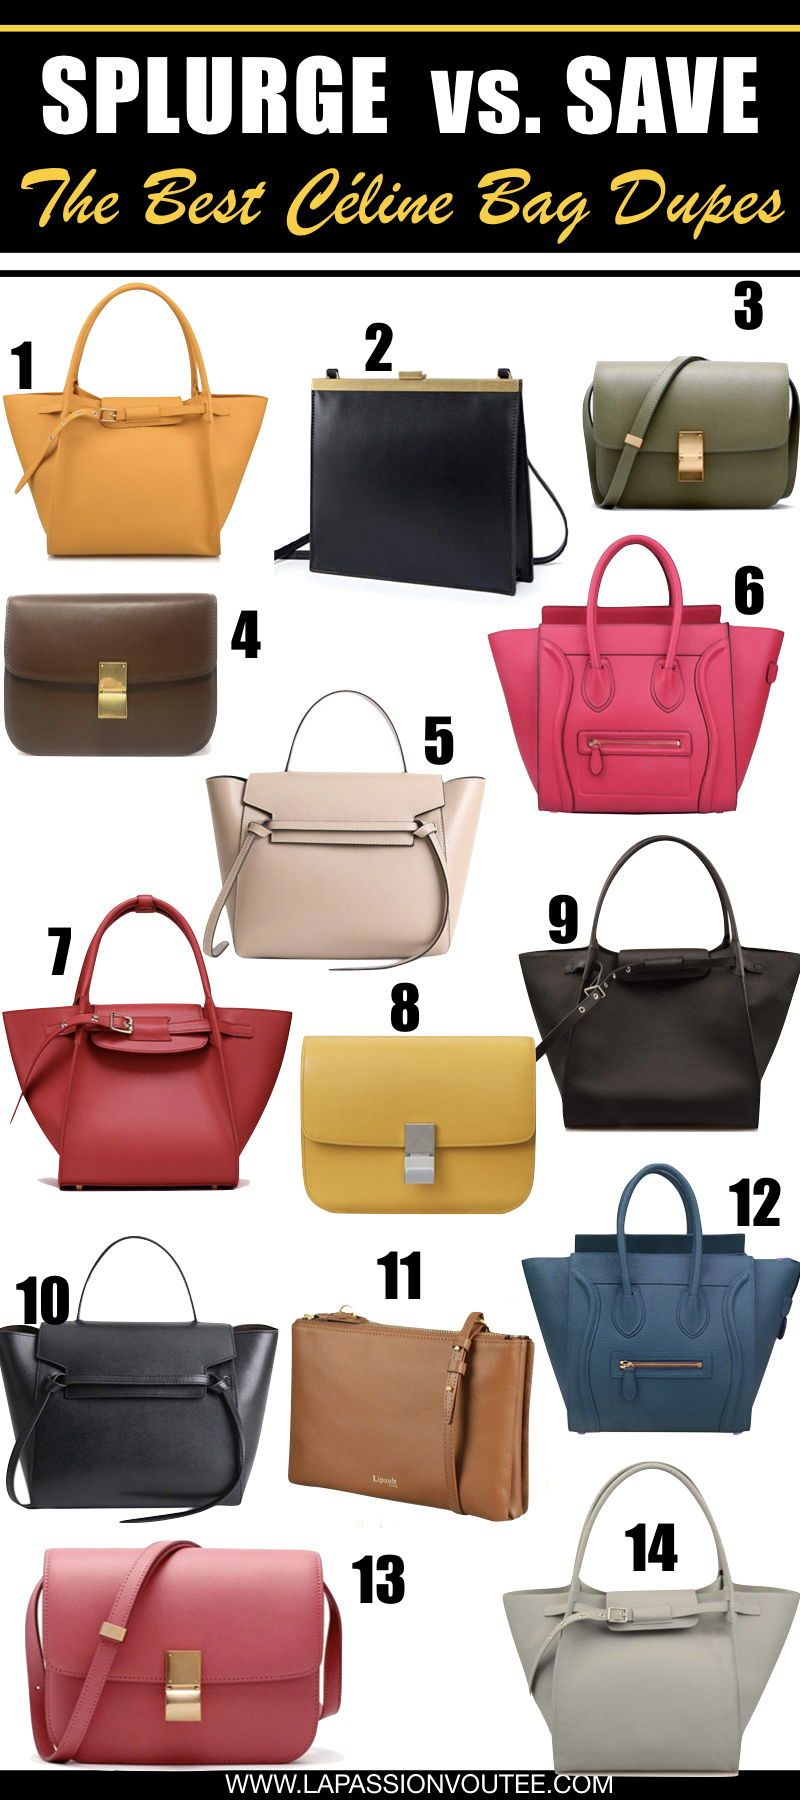 76ec7df5f07e7 Looking for the best Celine bag dupes? Read THIS post! This is your  ultimate guide to the most-wanted Céline bags and where to shop Celine  inspired bags ...